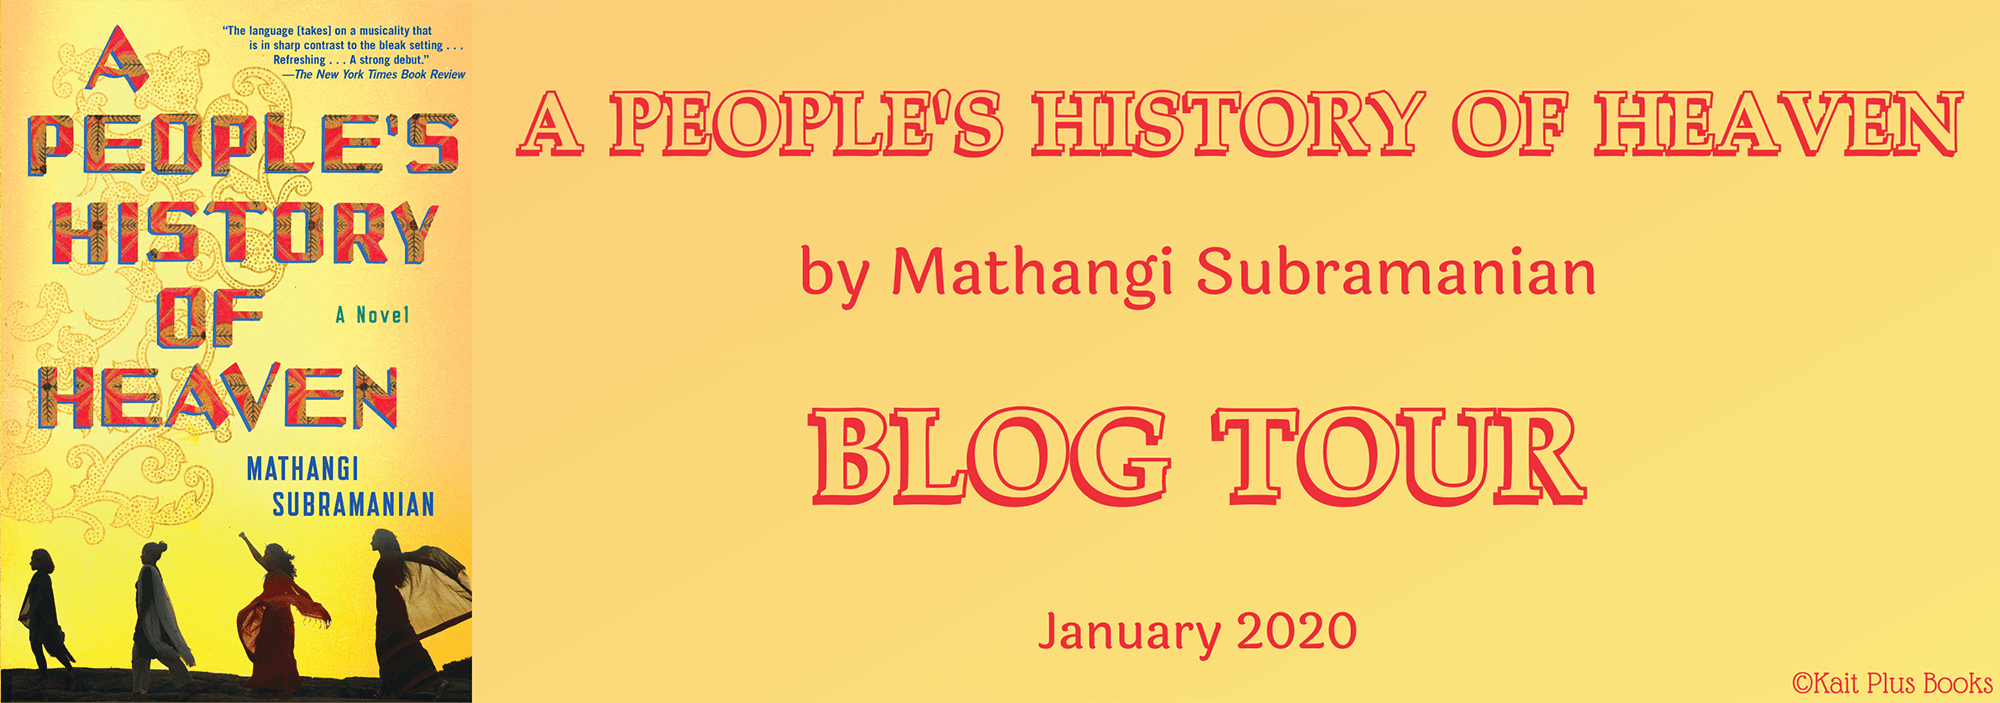 Blog Tour: A People's History of Heaven by Mathangi Subramanian (Spotlight!)